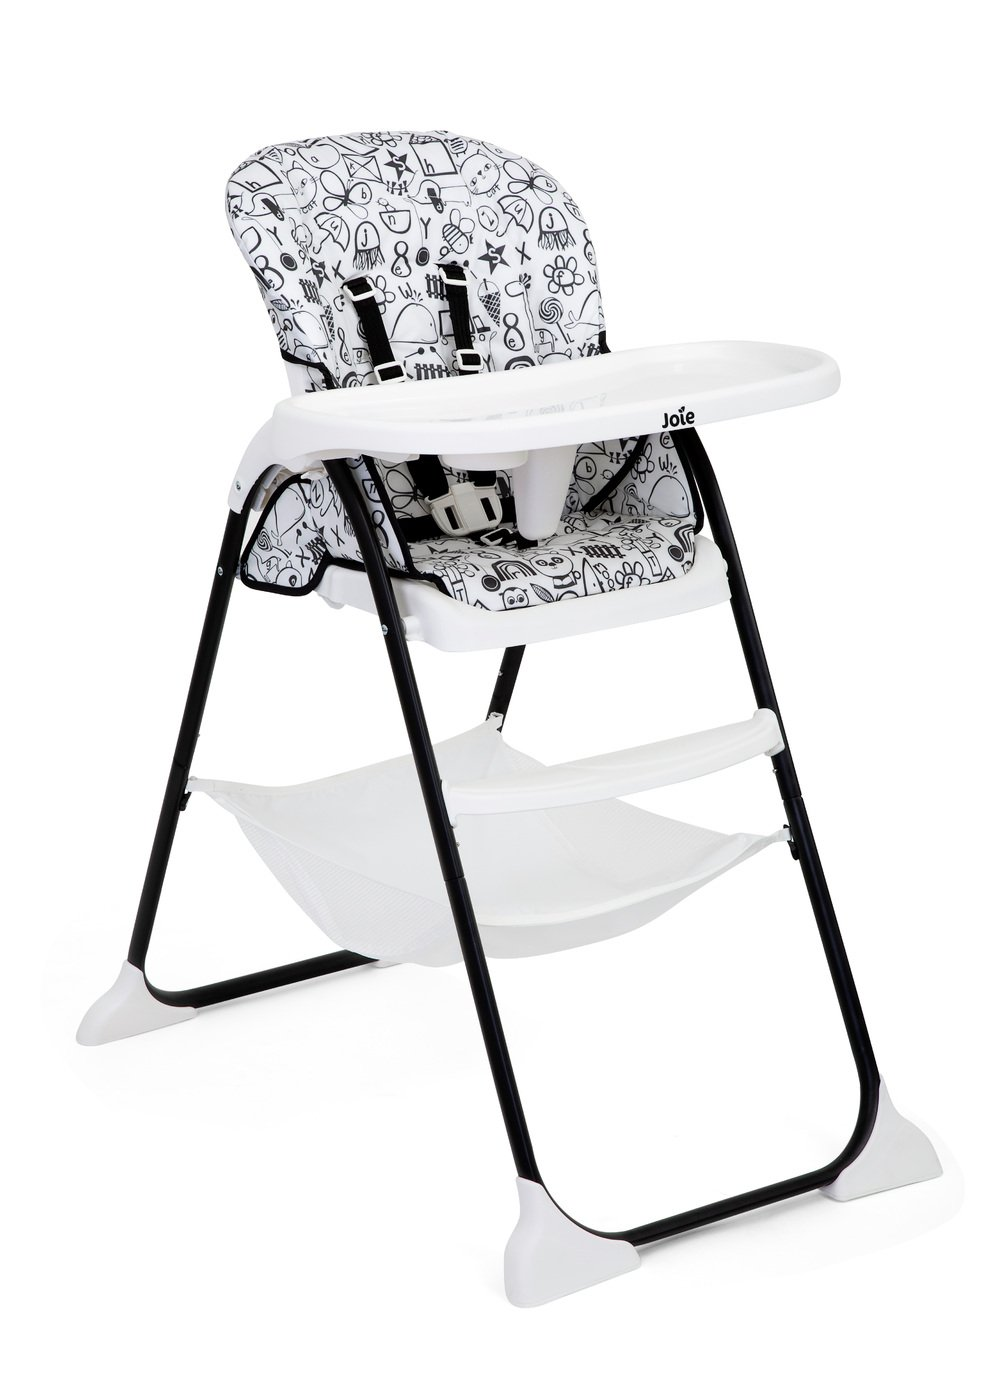 Image of Joie Mimzy Snacker Highchair - Alphabet Soup